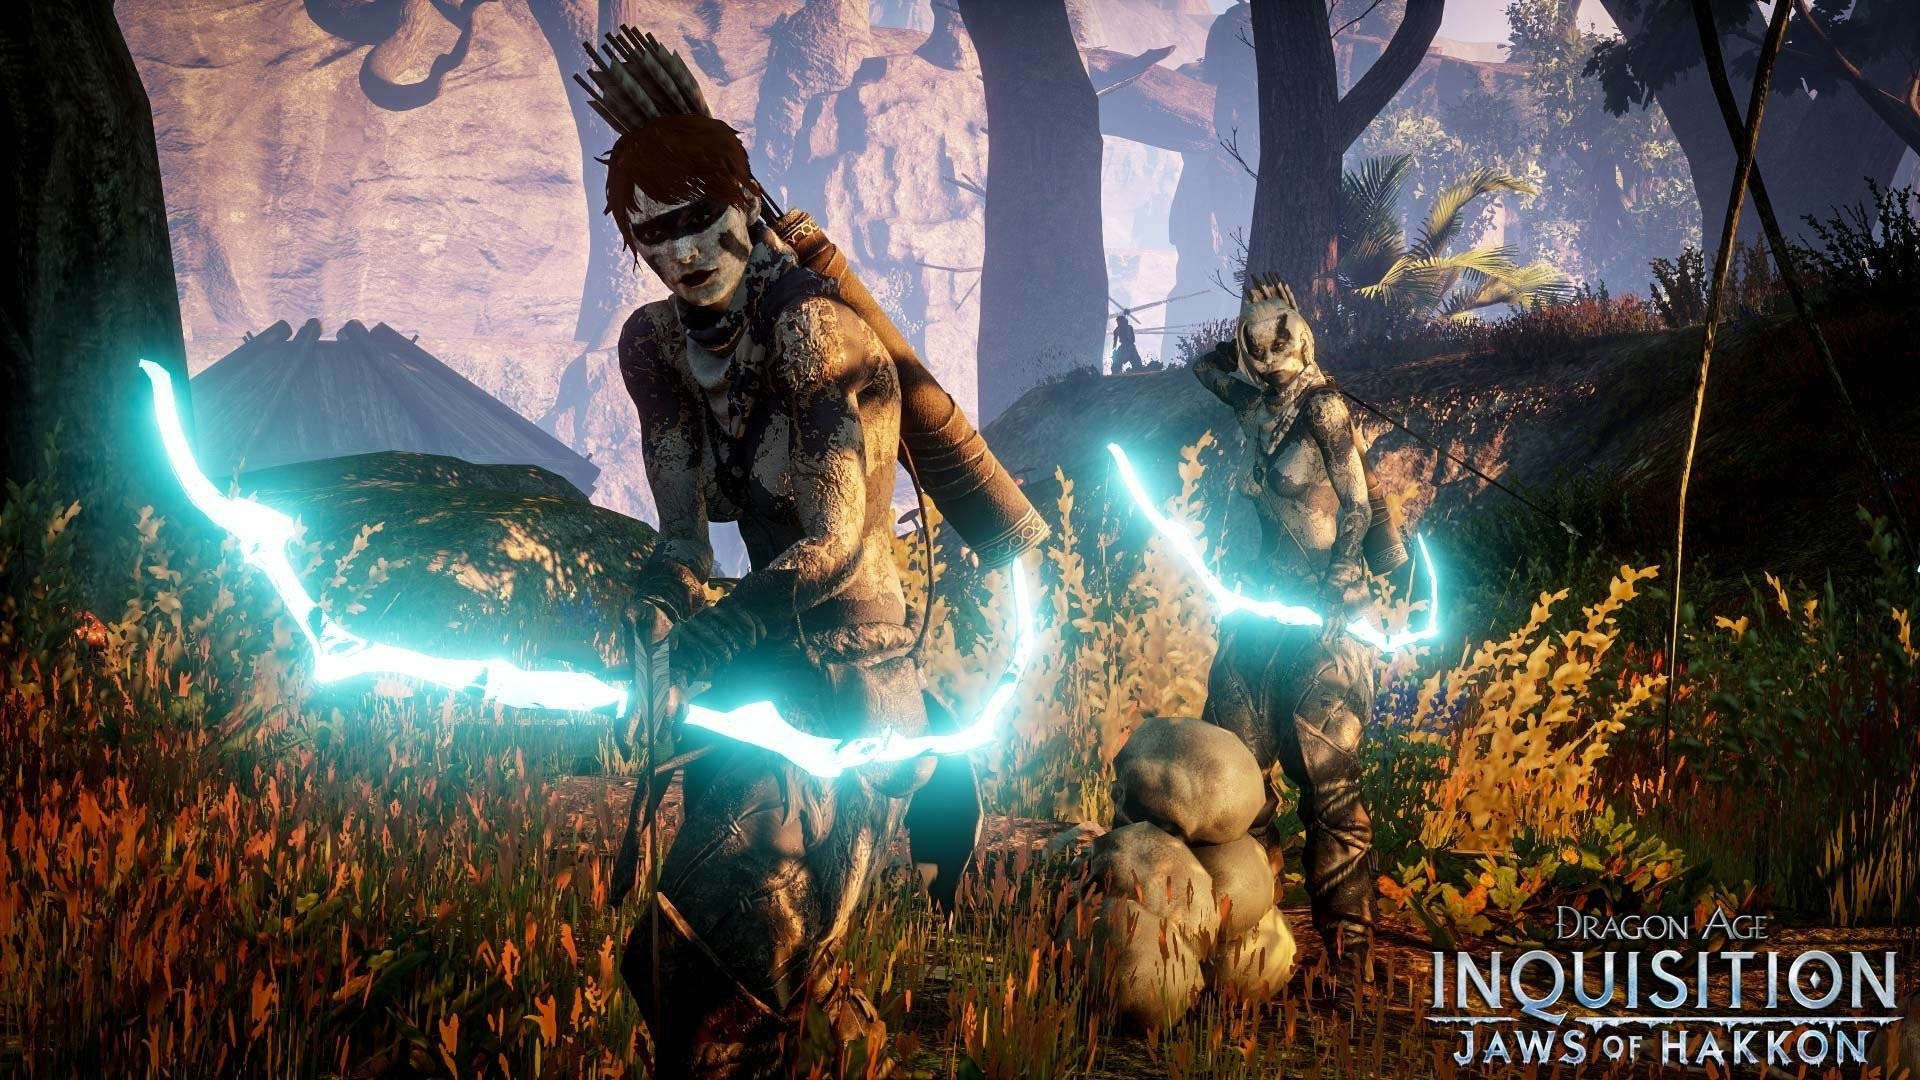 Dragon Age Inquisition Wallpapers 1920x1080 89 Images